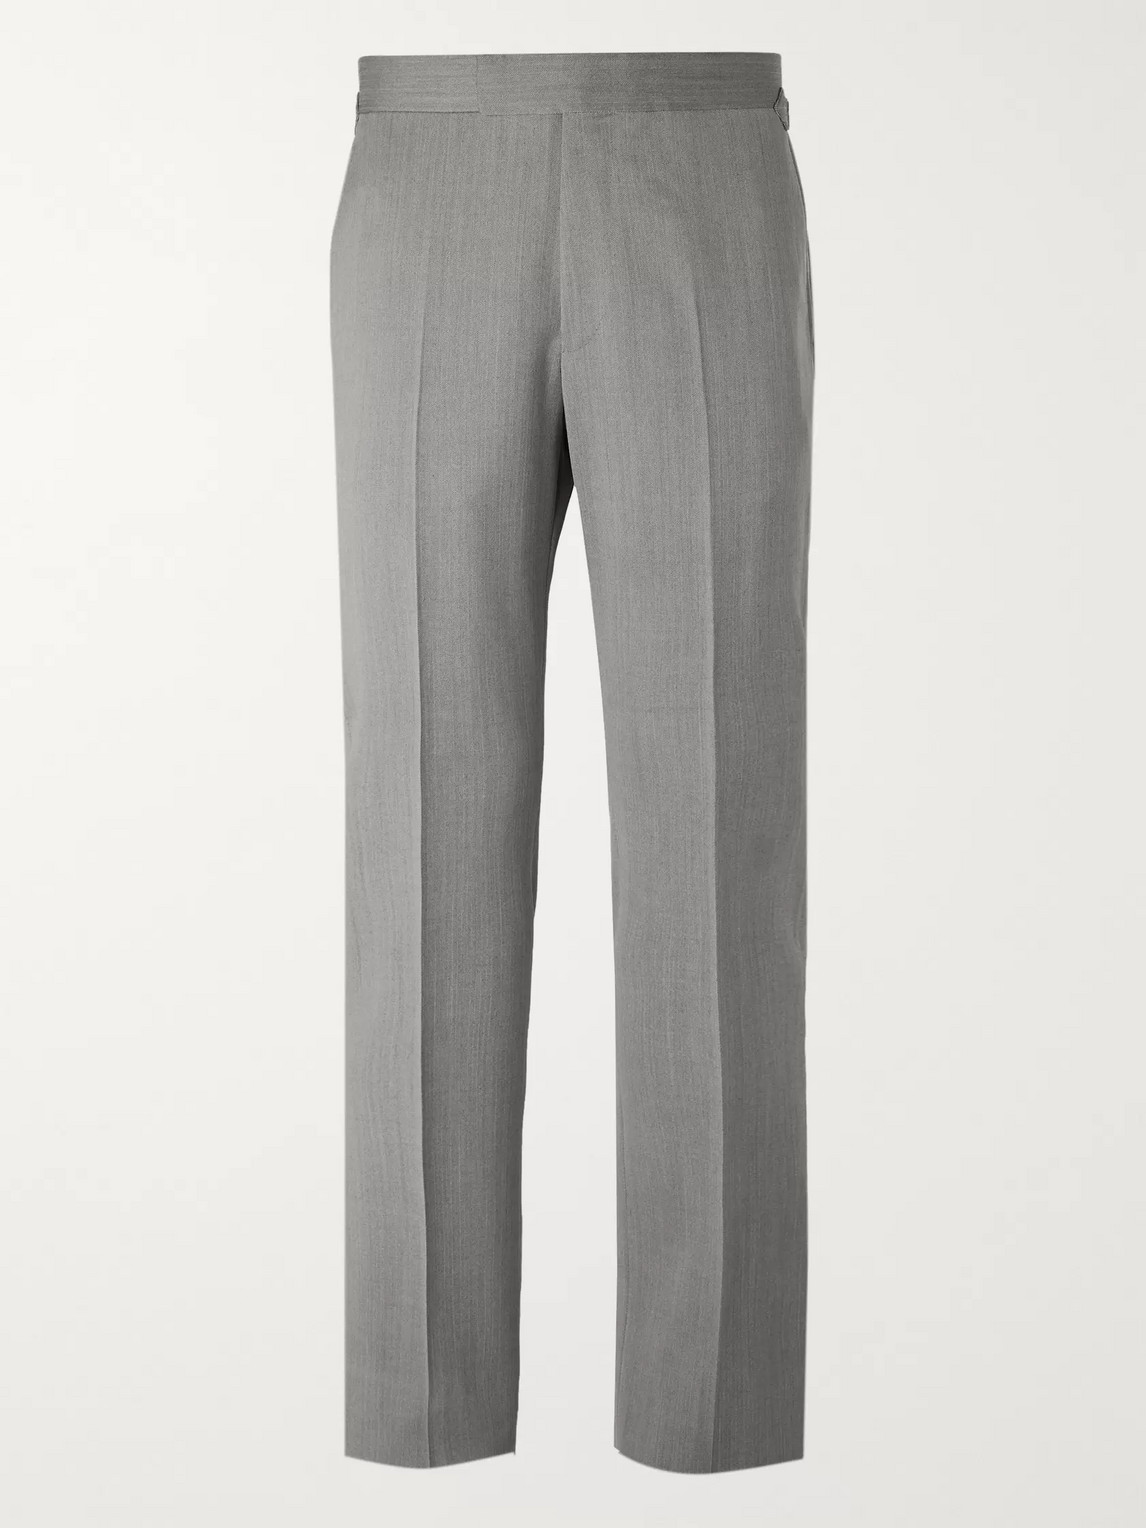 Kingsman Conrad Slim-fit Herringbone Wool Suit Trousers In Gray